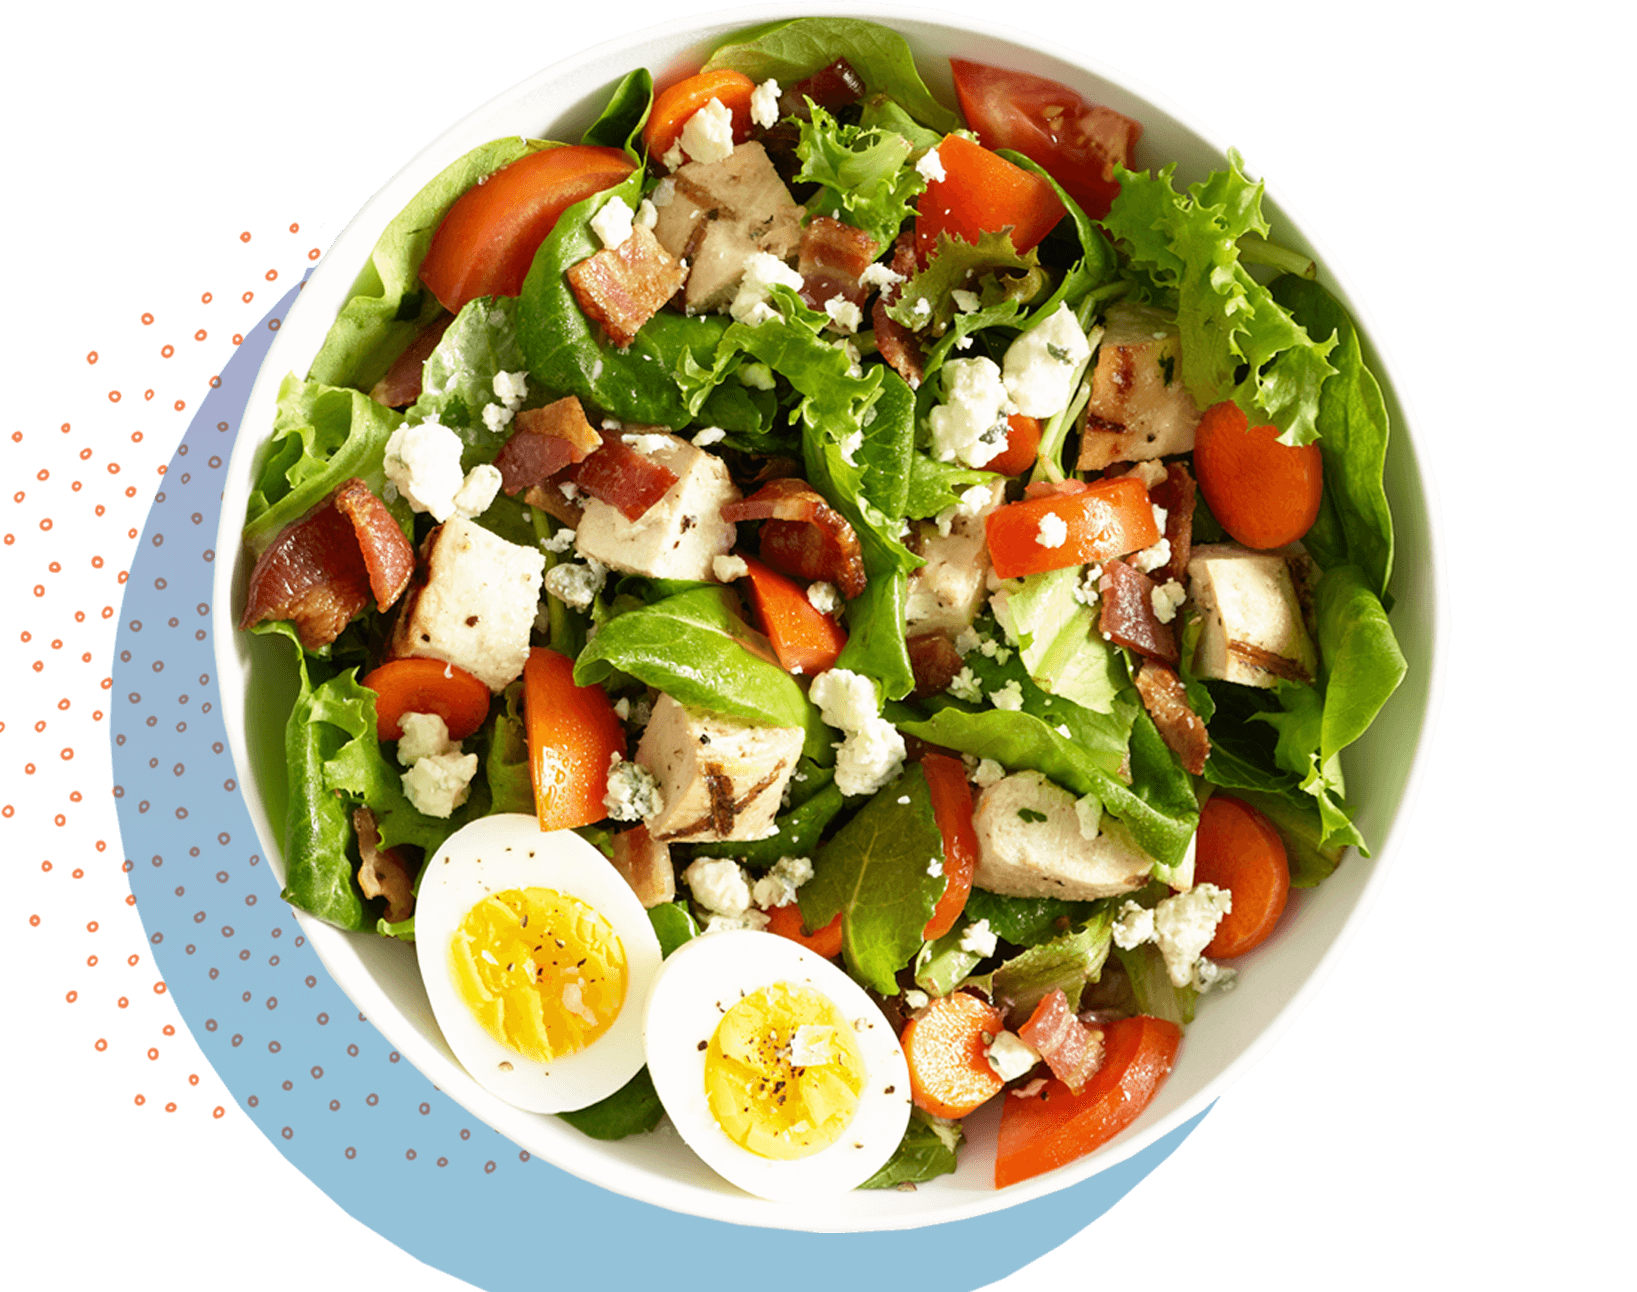 Salad with greens,tomato,cheese and boiled eggs